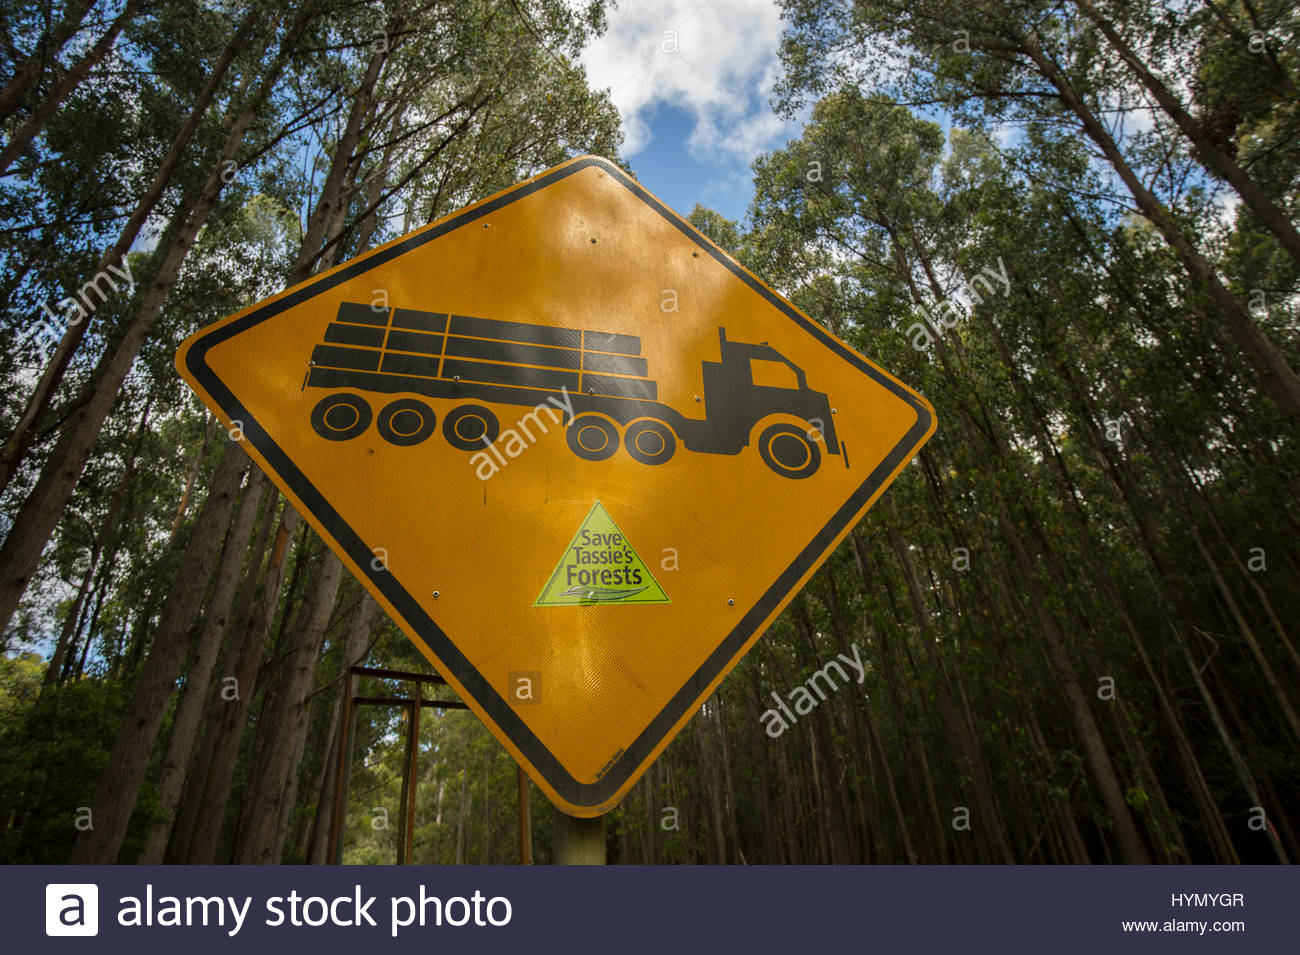 A protest sticker, Save Tassie's Forests, stuck on to a logging road sign which is in front of a grove of trees, - Stock Image